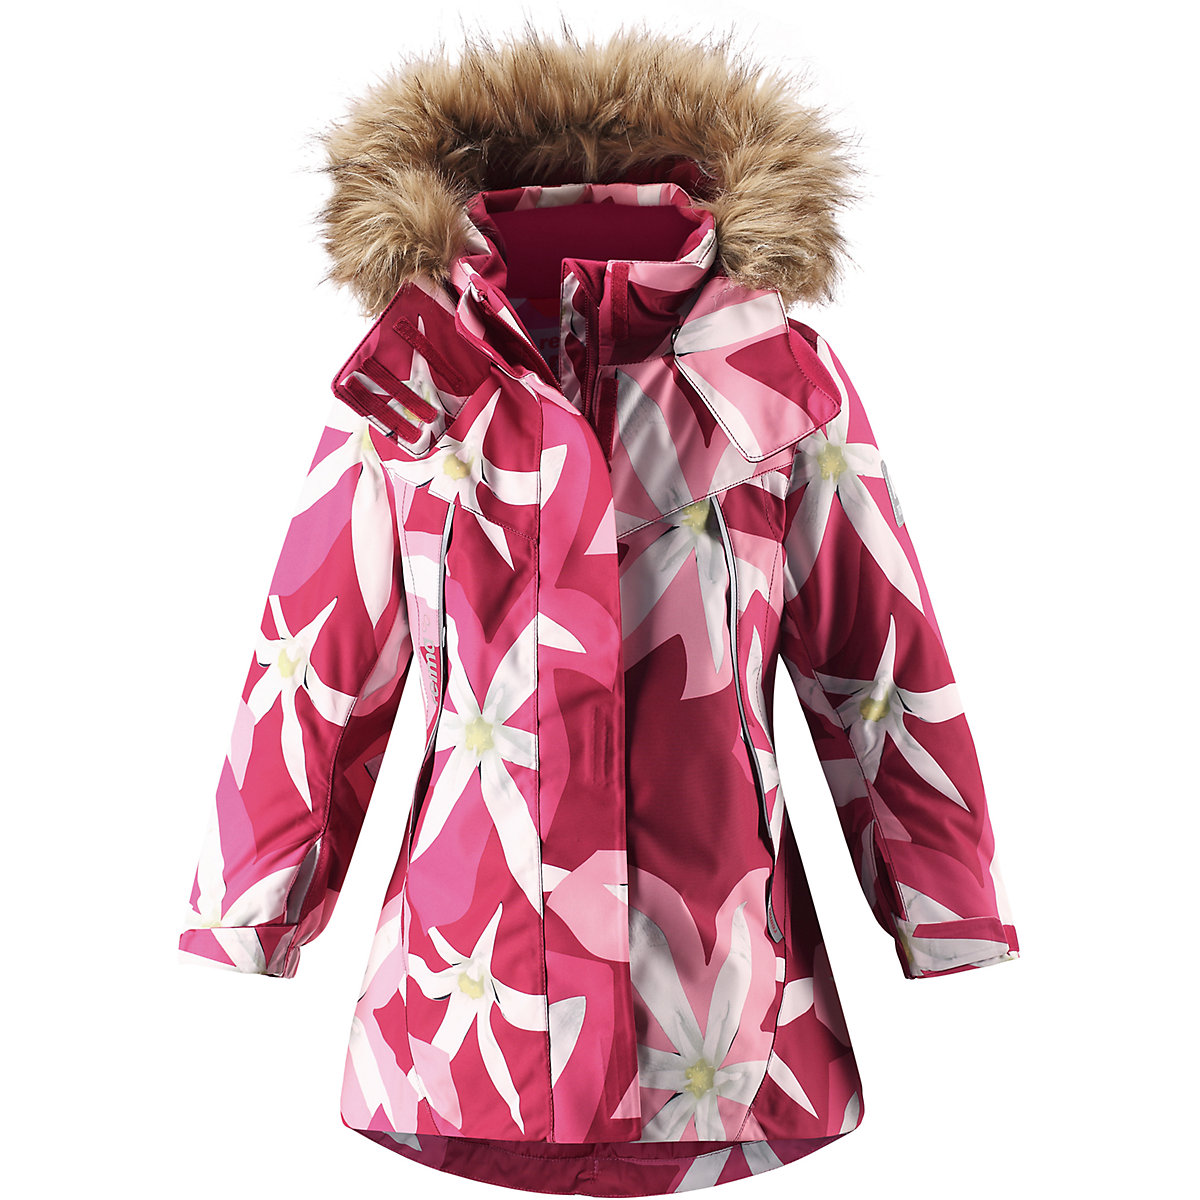 REIMA Jackets 8688910 for girls polyester winter  fur clothes girl vector brand ski jackets men outdoor thermal waterproof snowboard skiing jackets climbing snow winter clothes hxf70002